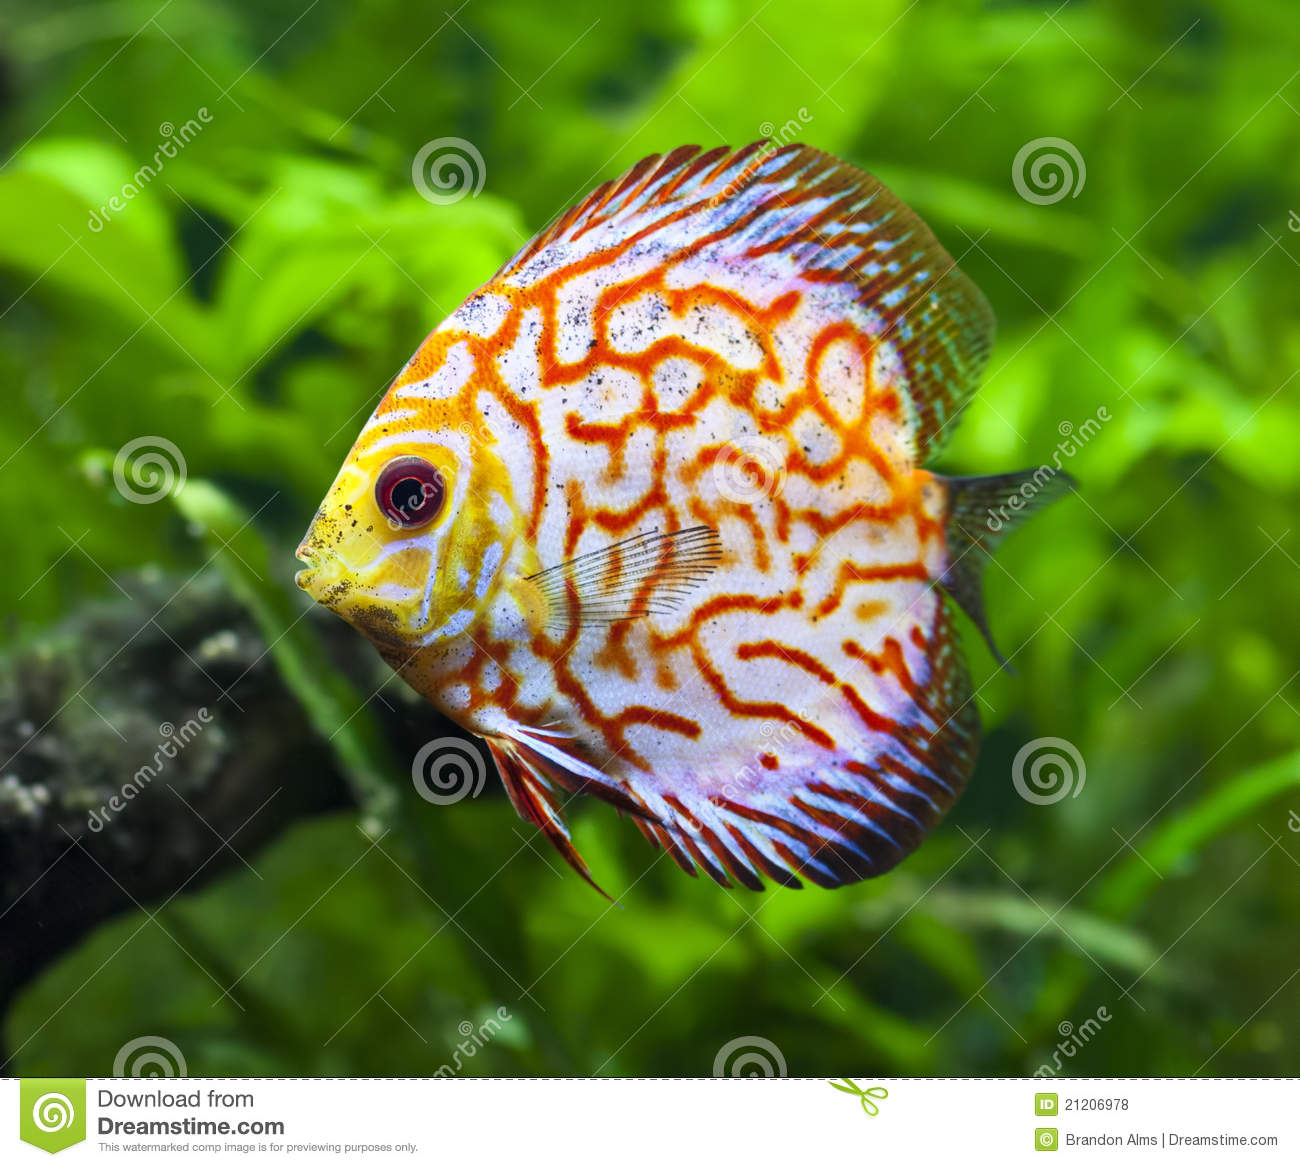 Pigeon Blood Discus Fish stock photo. Image of water - 21206978